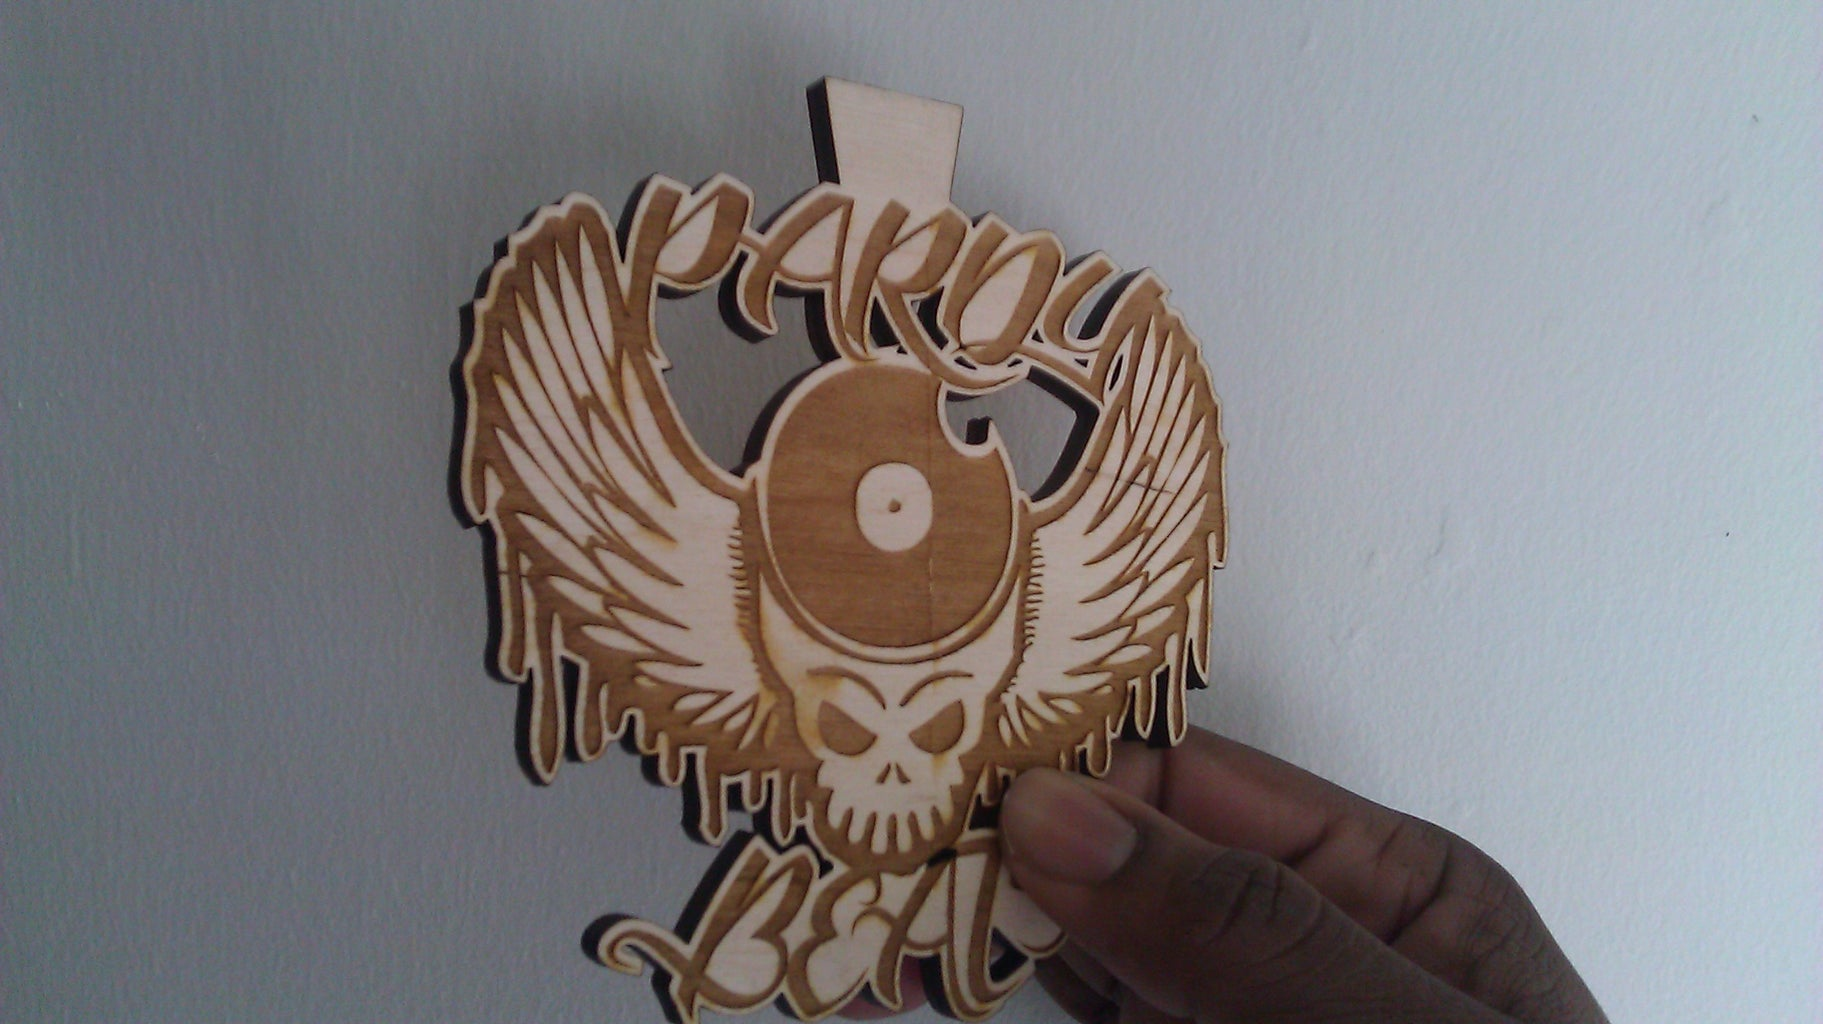 What I'll Do With the Laser Cutter If I Win!